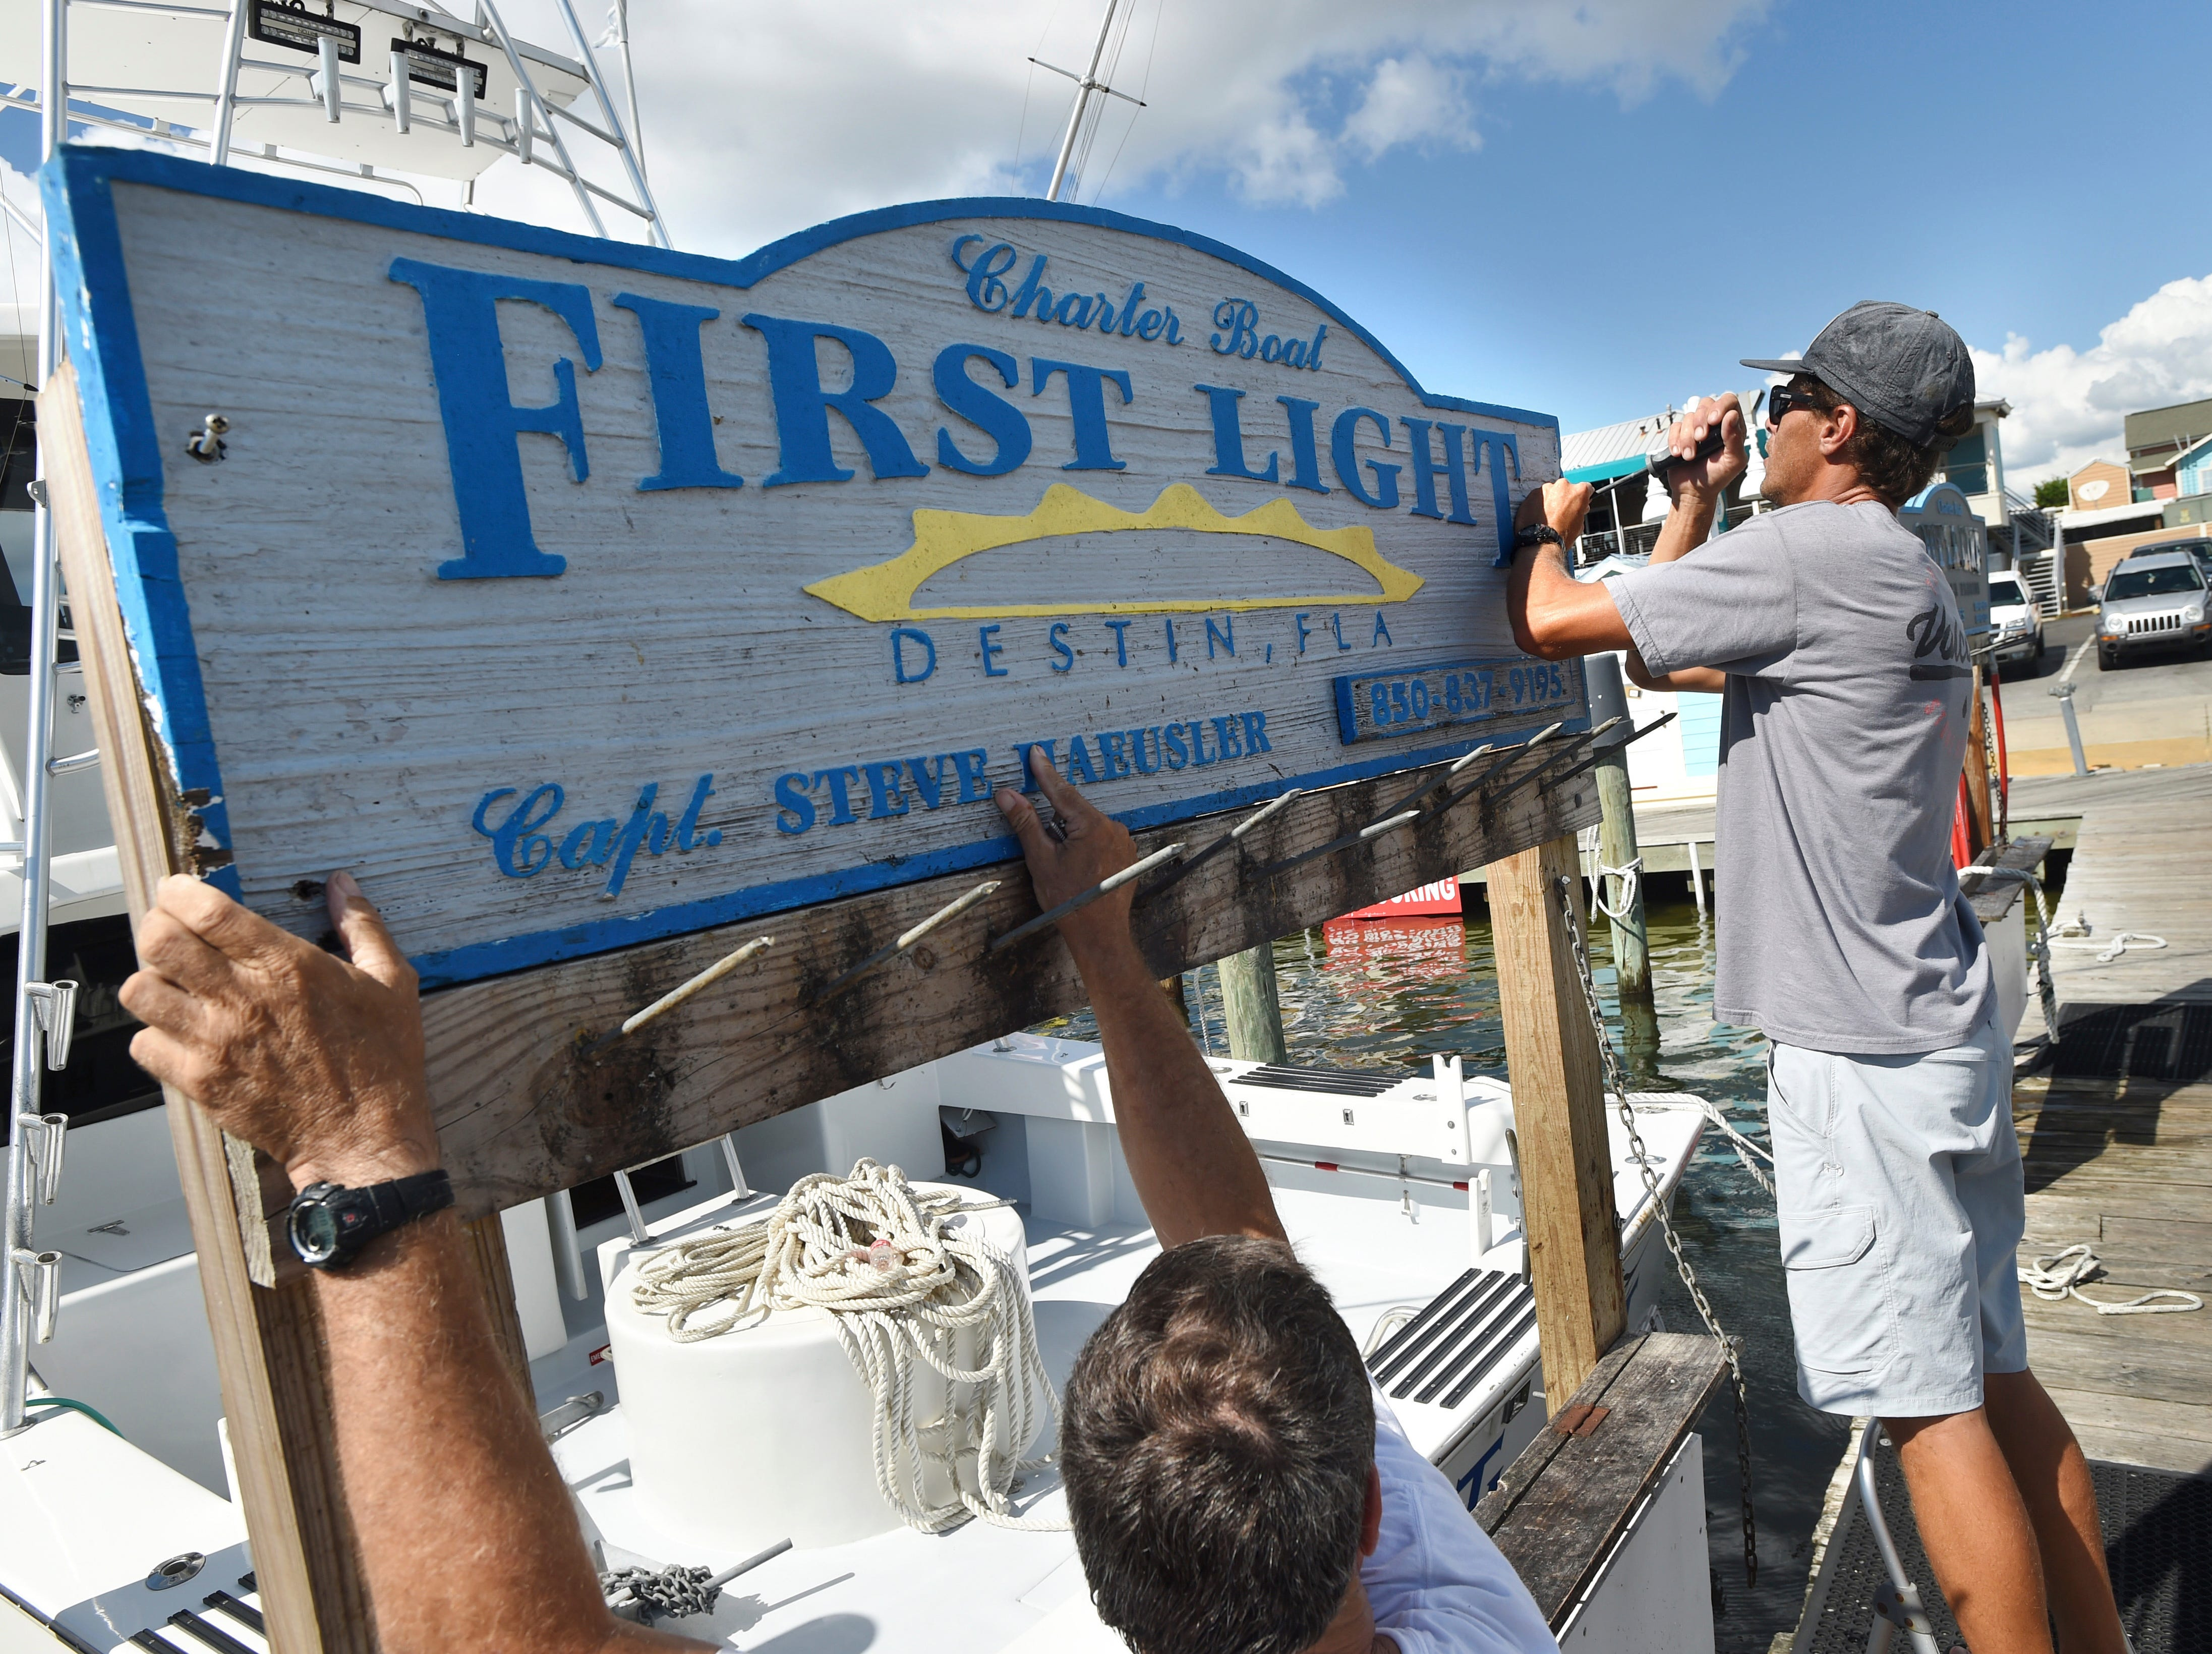 """Capt. Steve Haeusler, left, and Wyatt Ferreira take down the sign for Haeusler's charter fishing boat """"First Light"""" on Monday, Oct. 8, 2018. Boat captains in this fishing community were relocating their vessels to safer locations in advance of Hurricane Michael."""